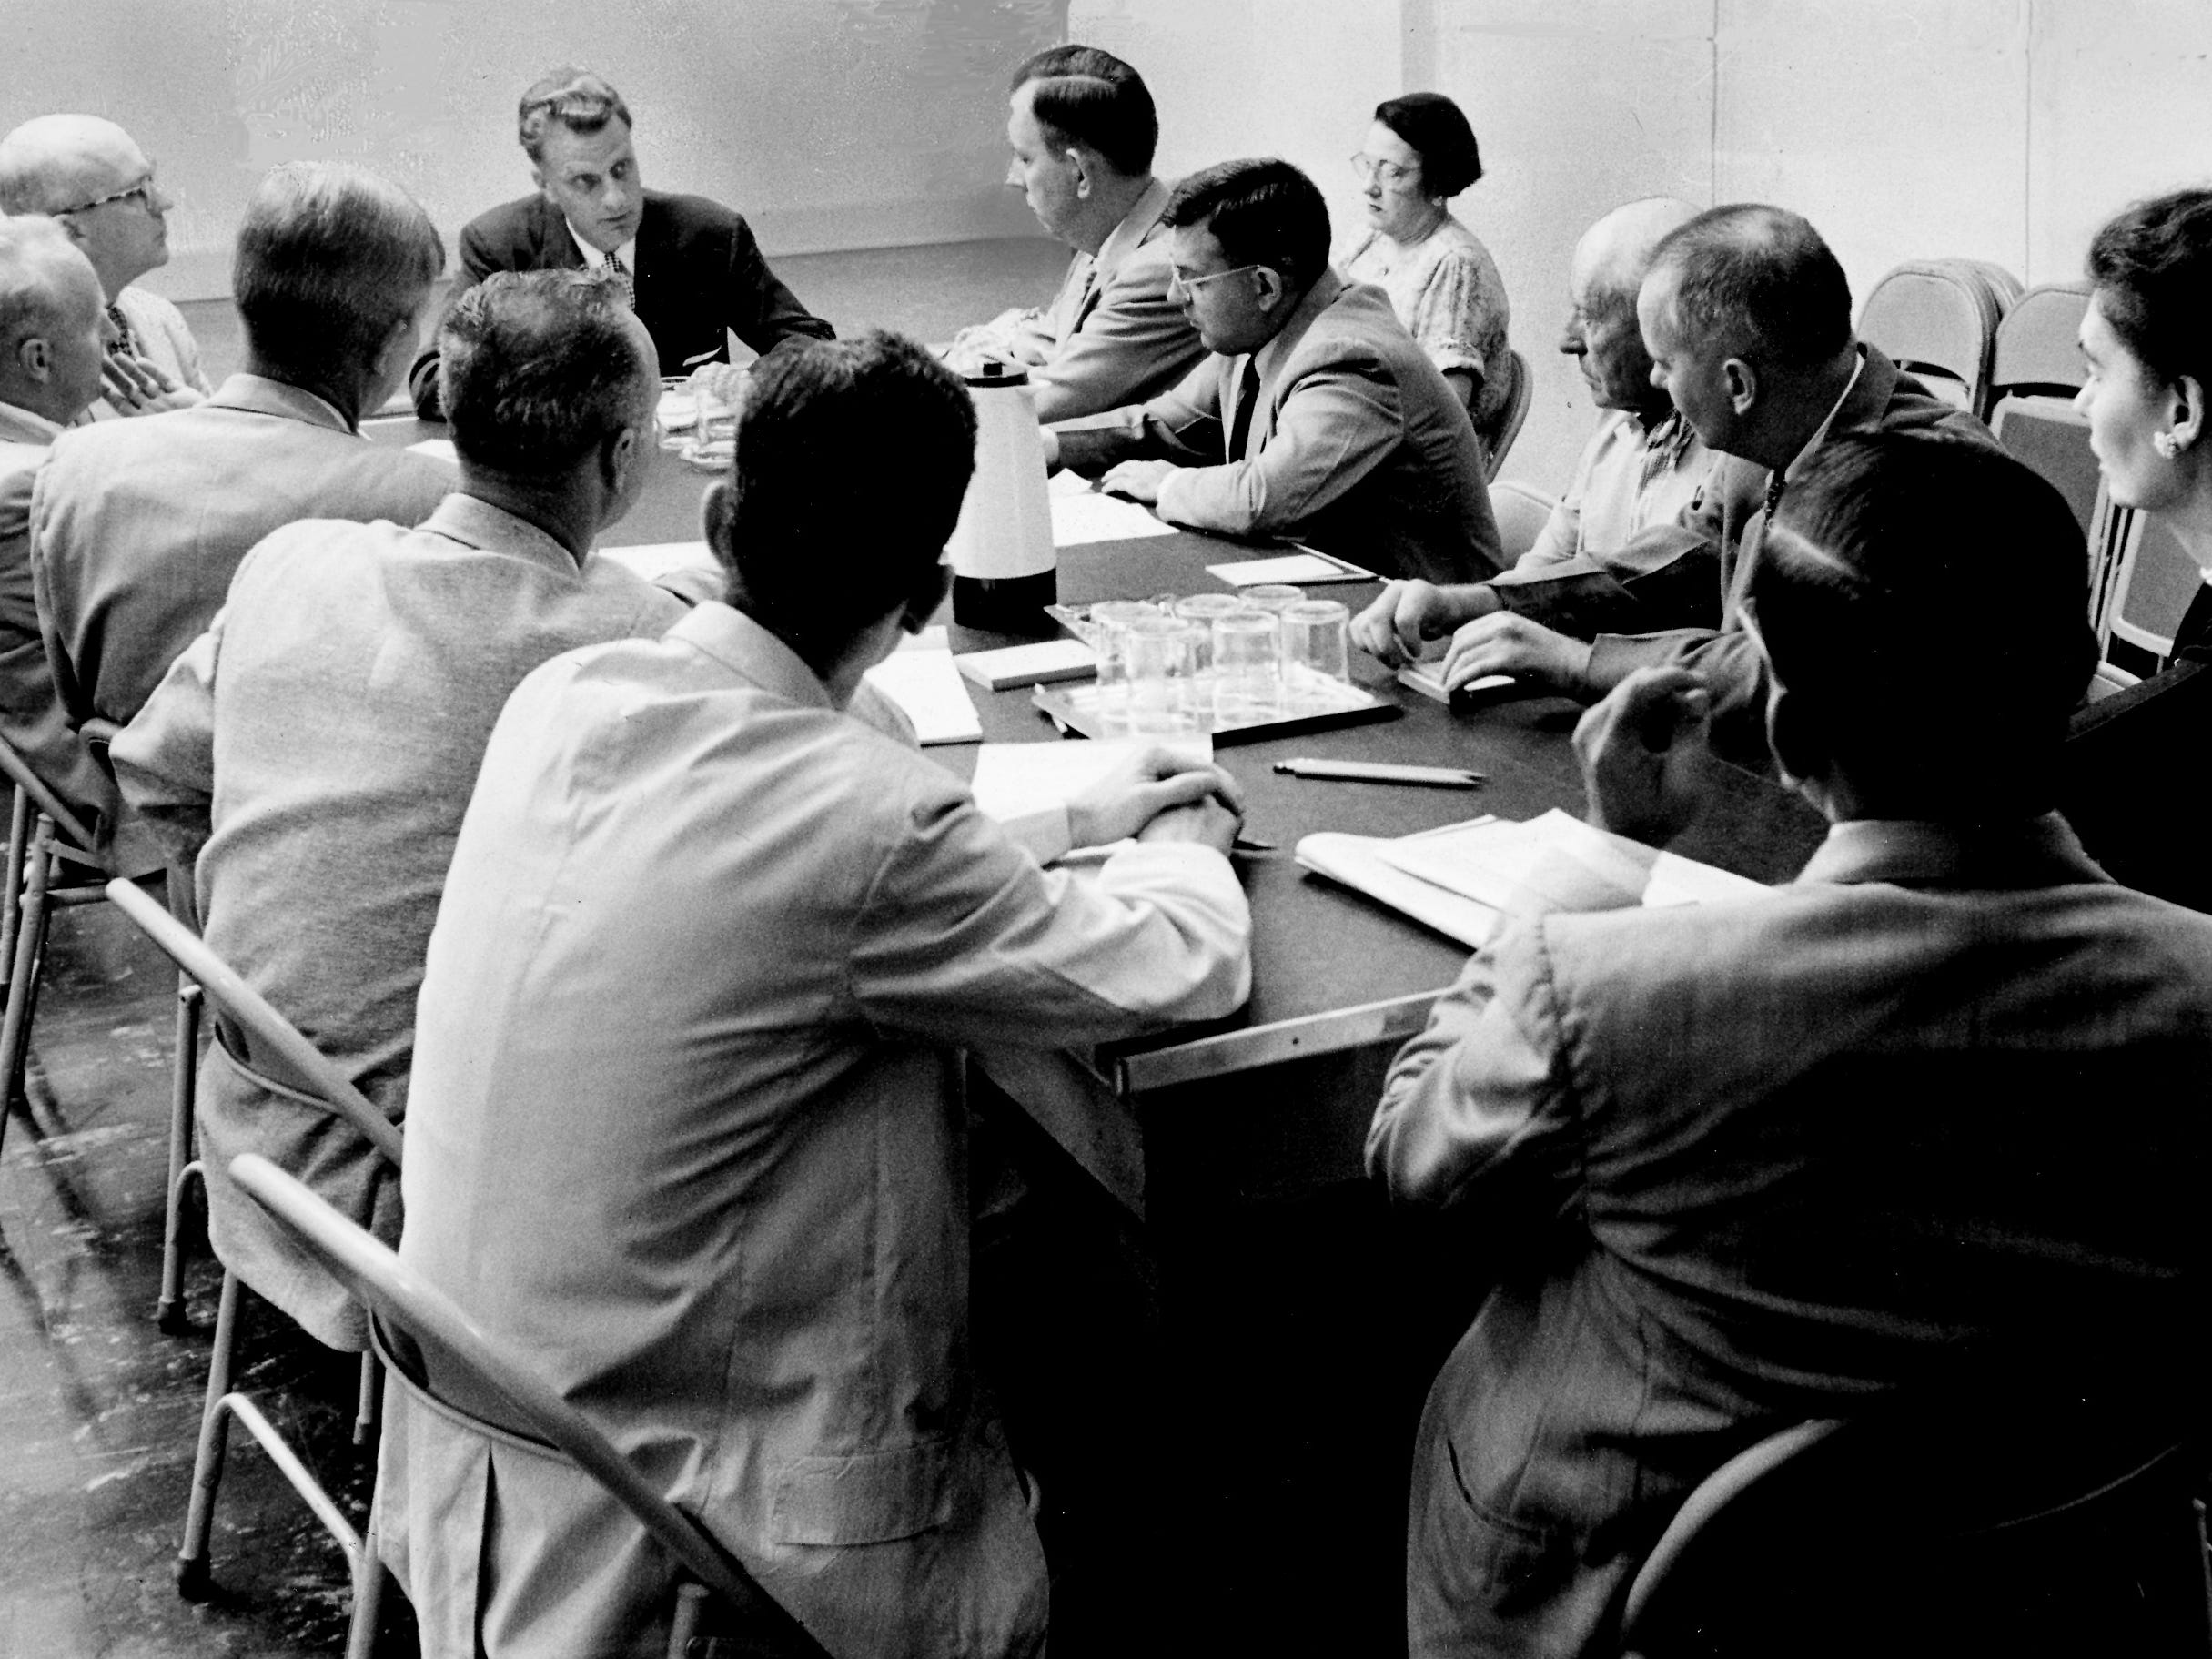 Around the The Tennessean's conference table, journalists fired questions Sept. 11, 1954, at the Rev. Billy Graham, at the head of the table, ranging from world events to his own background. Members of The Tennessean, from Graham's left clockwise, are: Hugh Walker, stenographer Beatrice Commander, James Carty, Lindsay Glegg, Wayne Whitt, Louise Davis, Creed Black, Charles Daw, Ed Freeman, Nat Caldwell, Dr. Alan Redpath and Coleman A. Harwell.